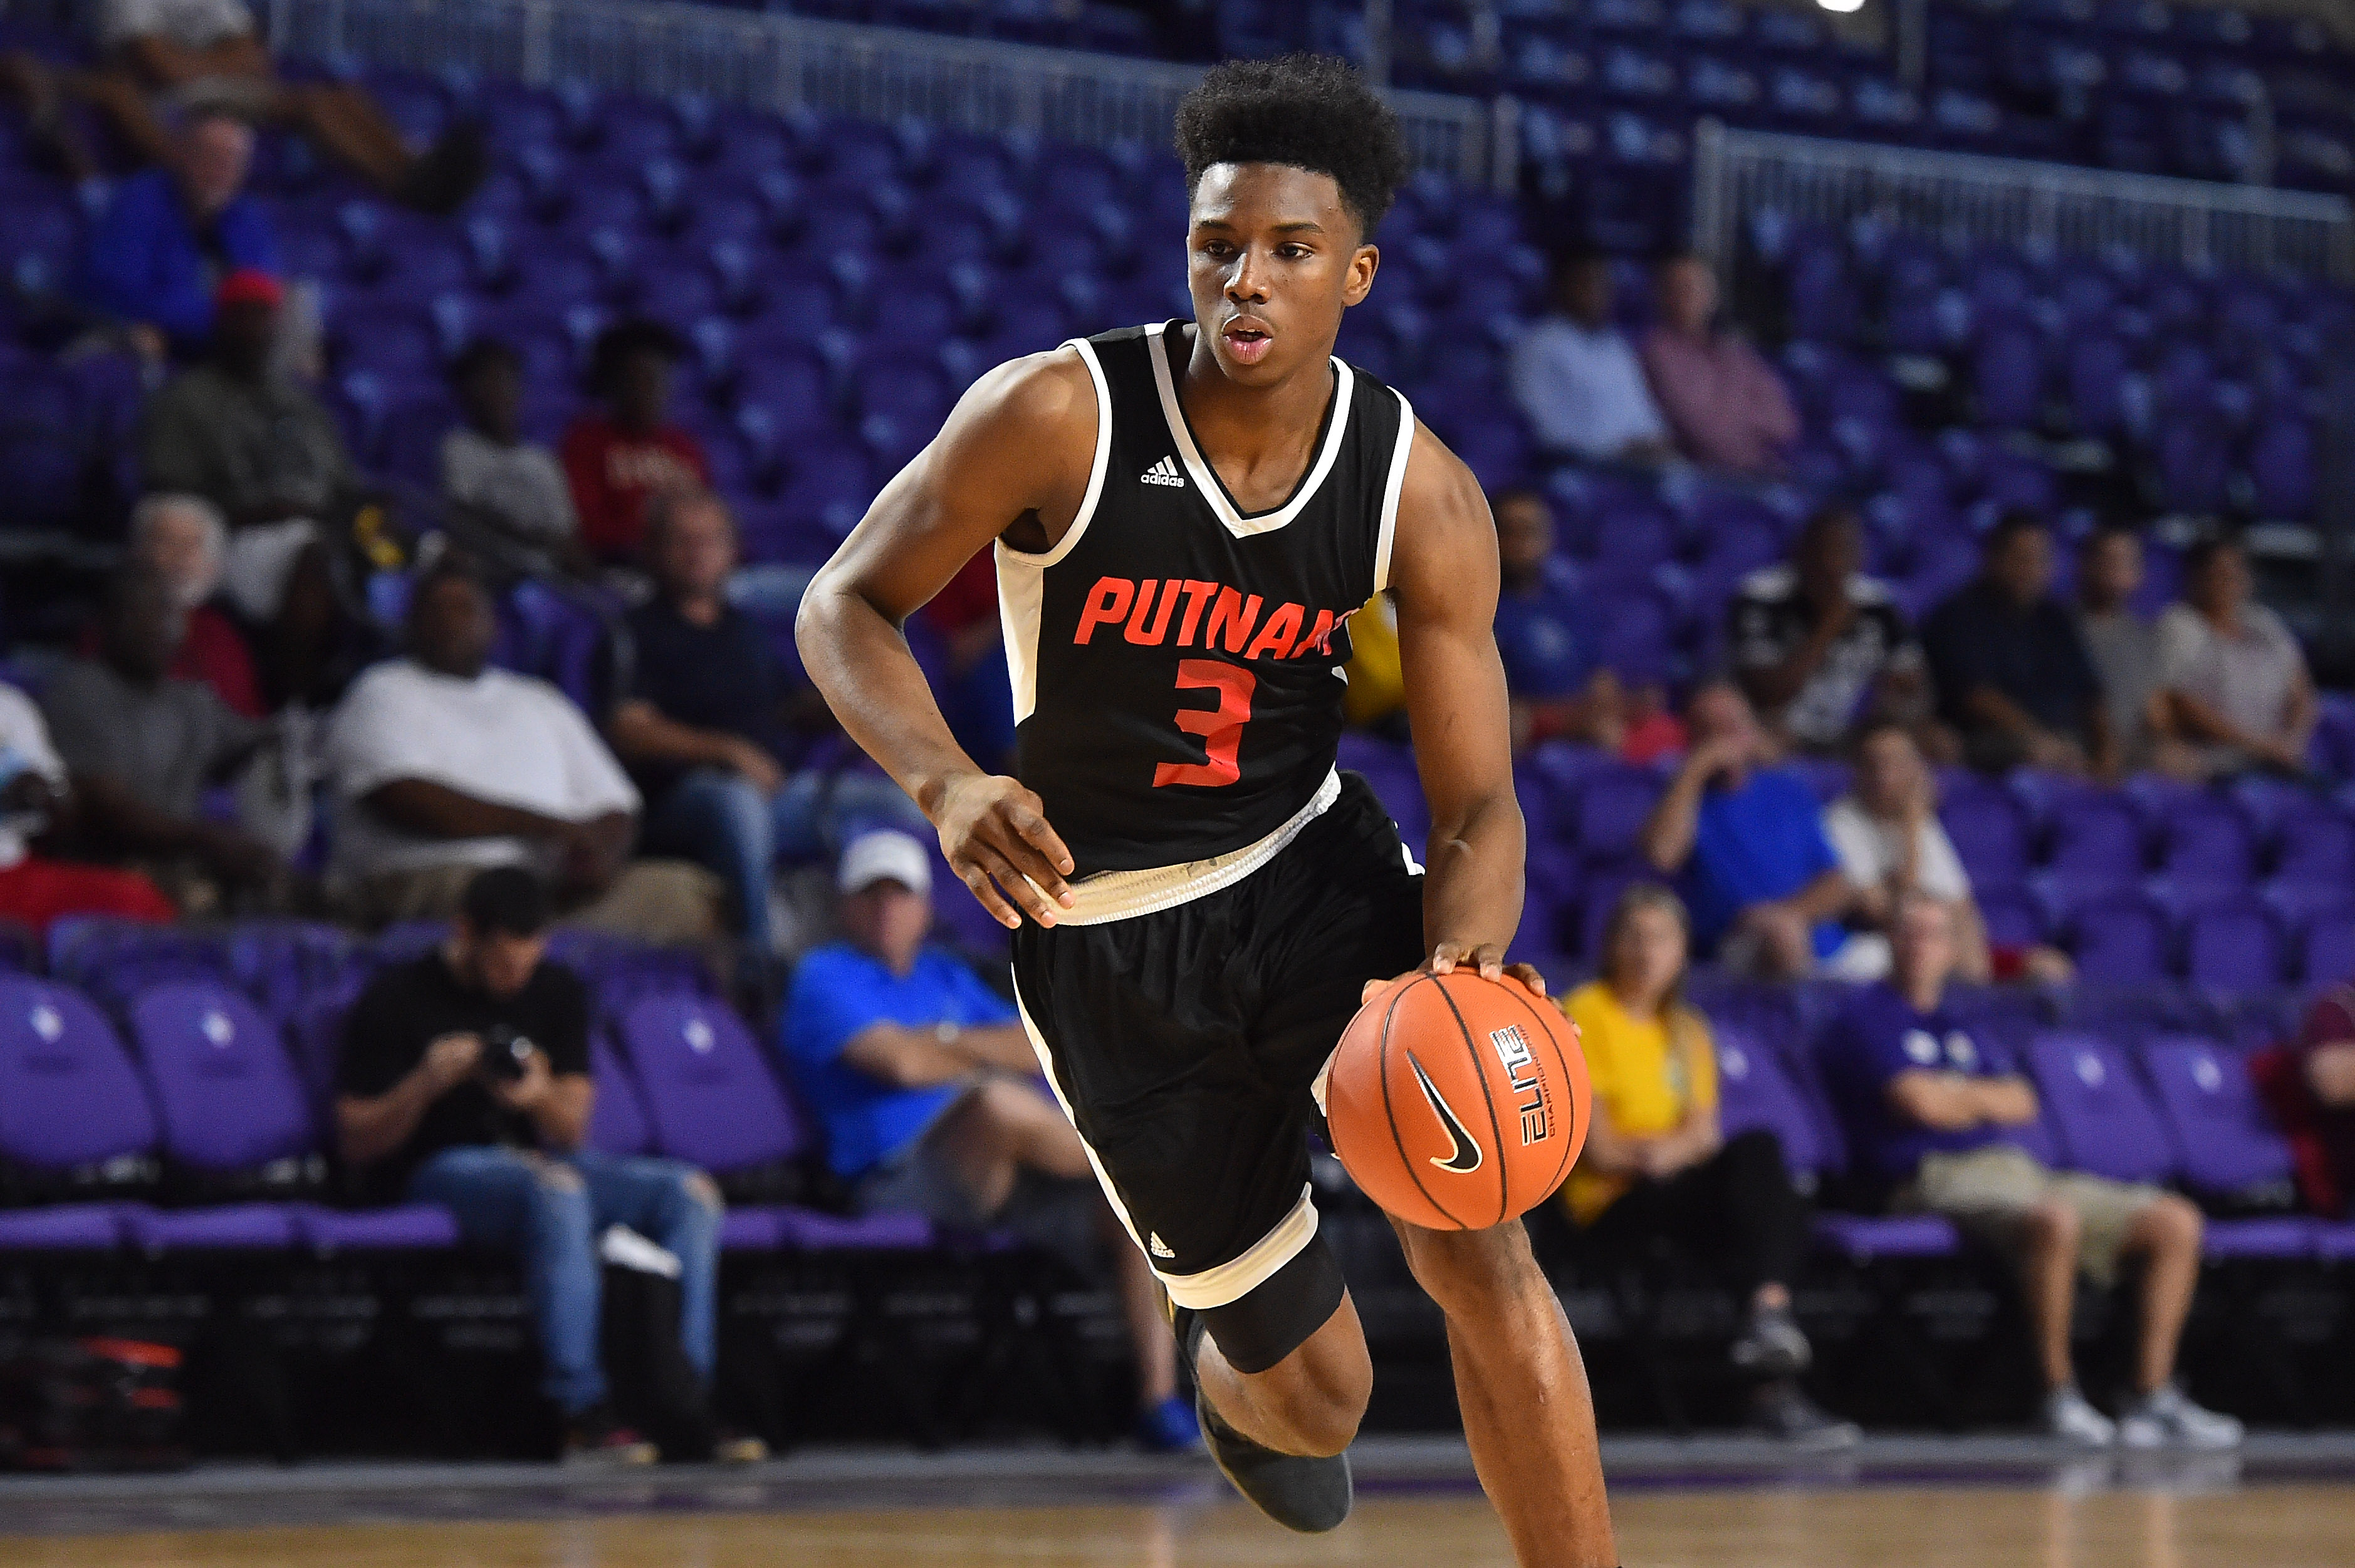 Kentucky Basketball Recruiting In 2017 Class: Kentucky Basketball: What To Expect From The 2017